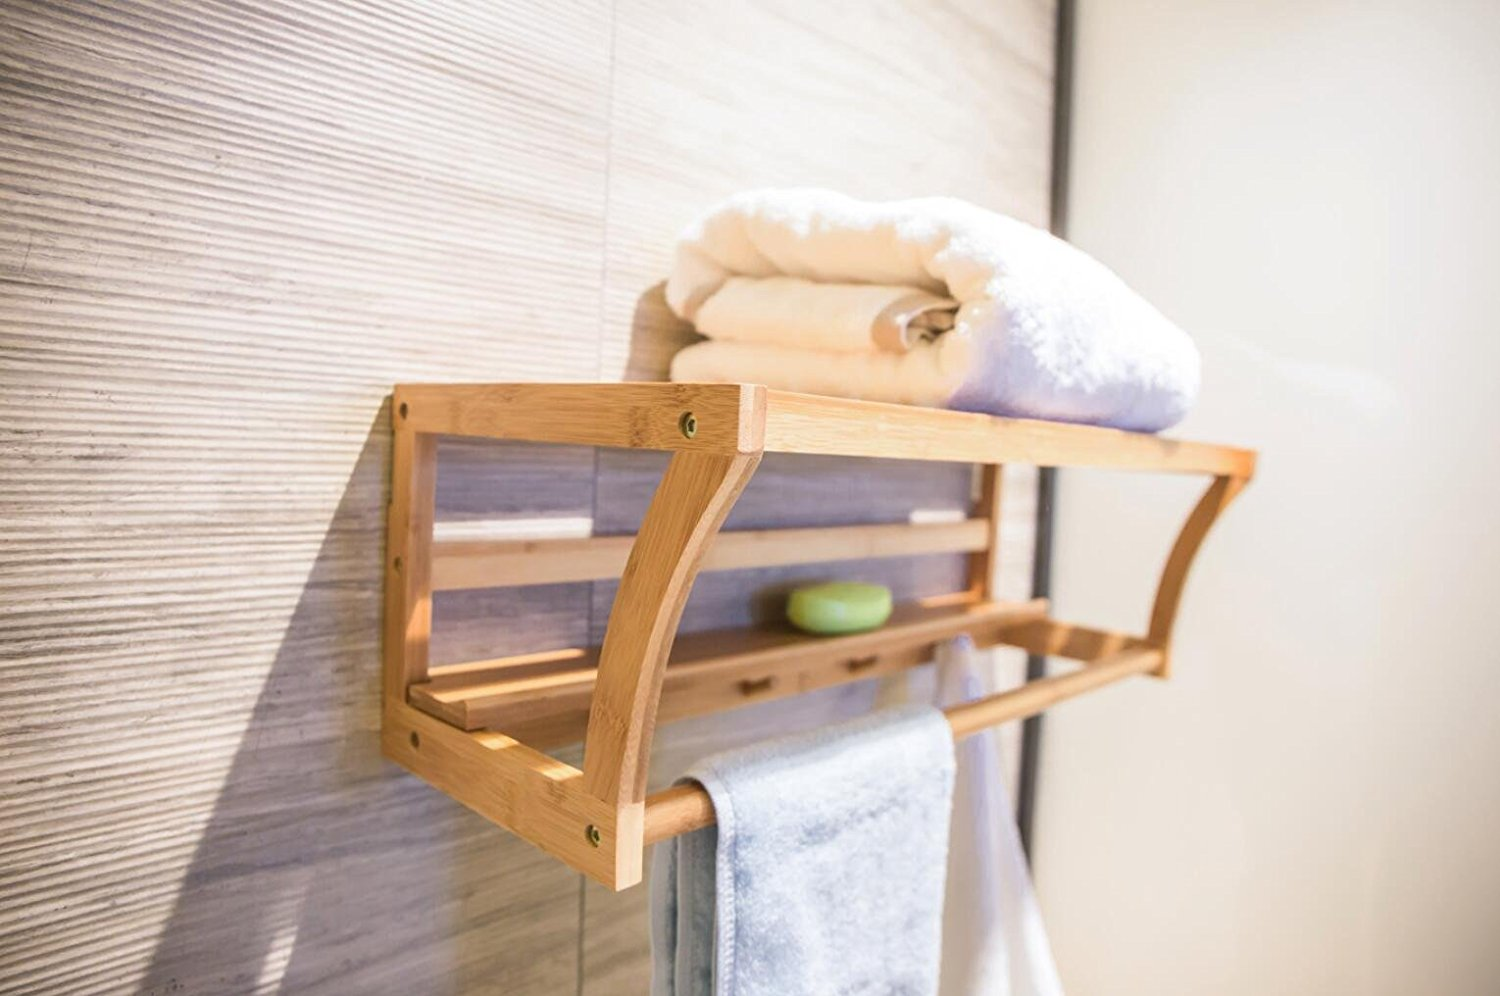 Bamboo Towel Bar and Towel Rack with Shelf and Hooks for Bathroom Kitchen By BAMBUROBA